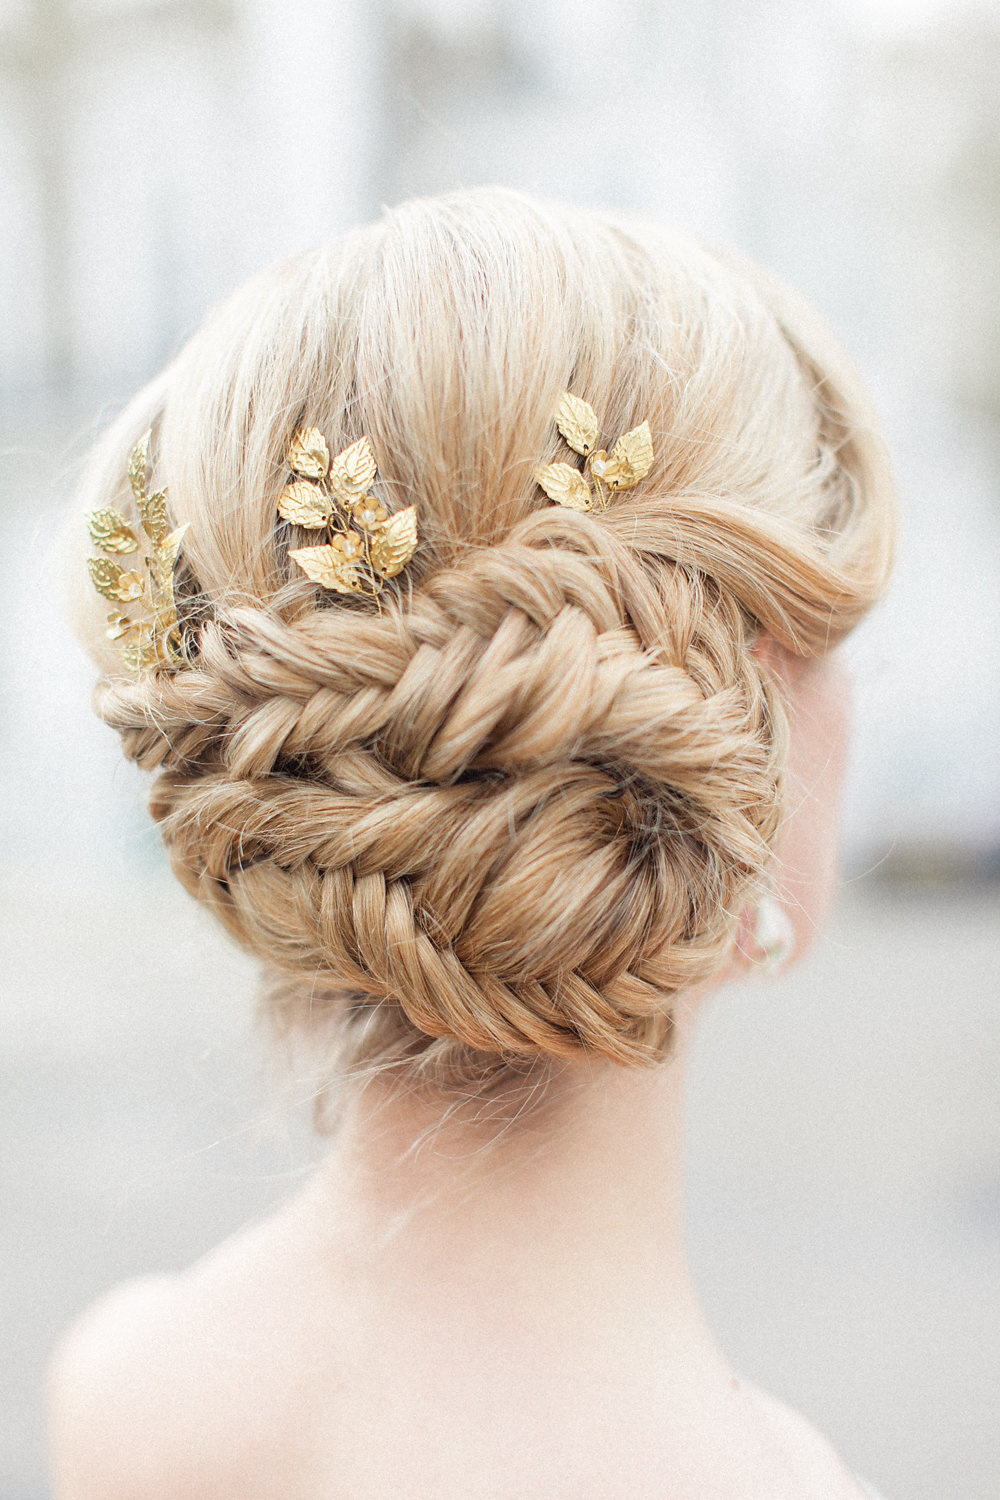 fishbraid bun wedding hair - photo by Roberta Facchini Photography http://ruffledblog.com/herbarium-inspired-wedding-ideas